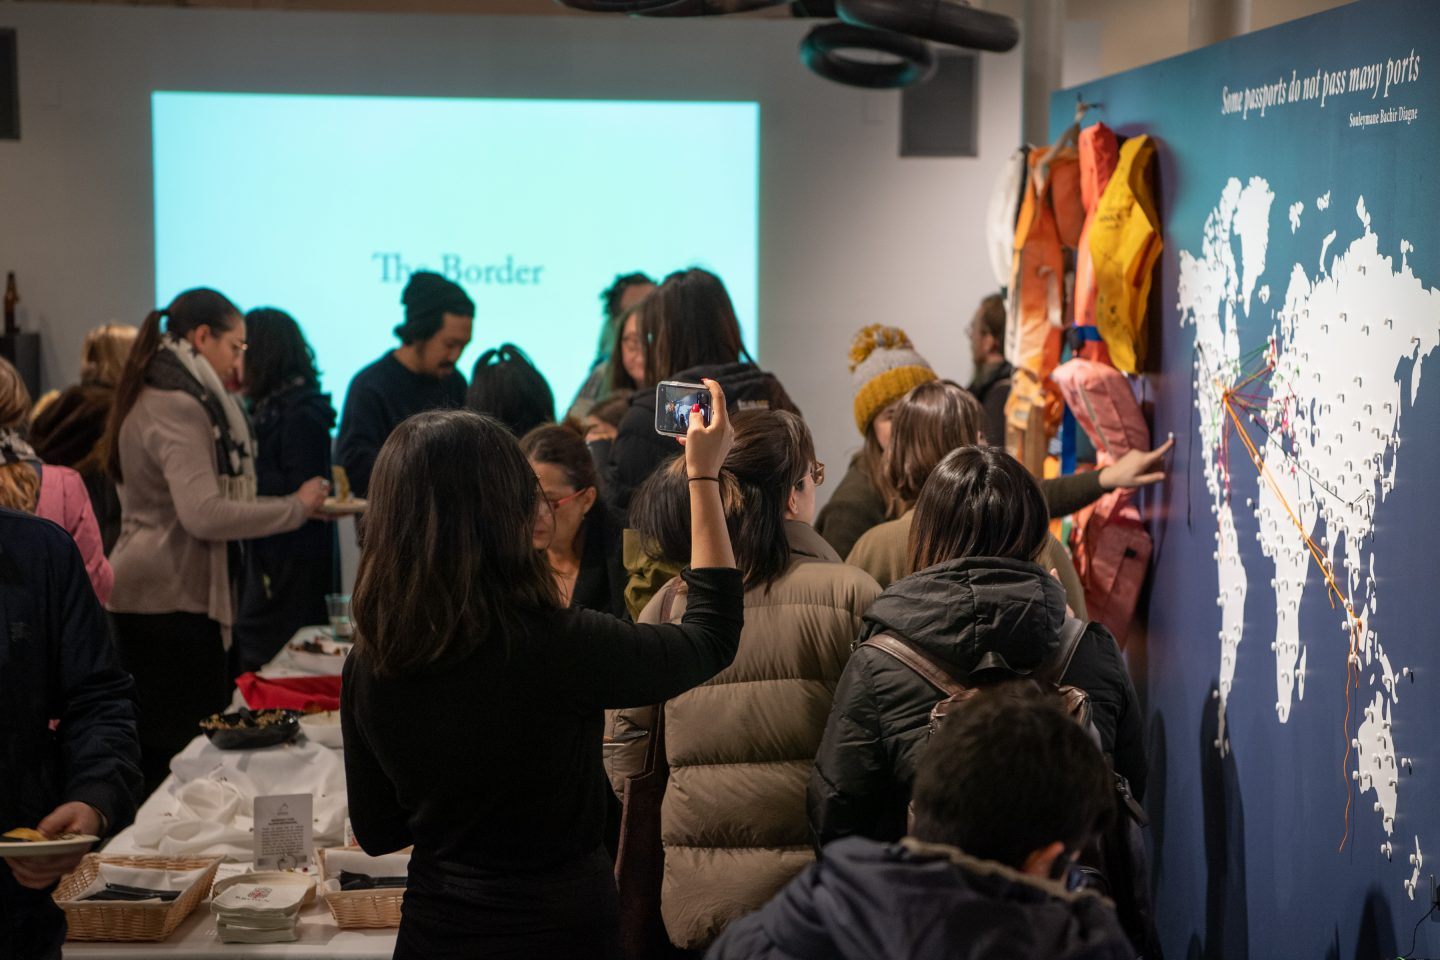 Photo of people mingling in the exhibit during the opening event.